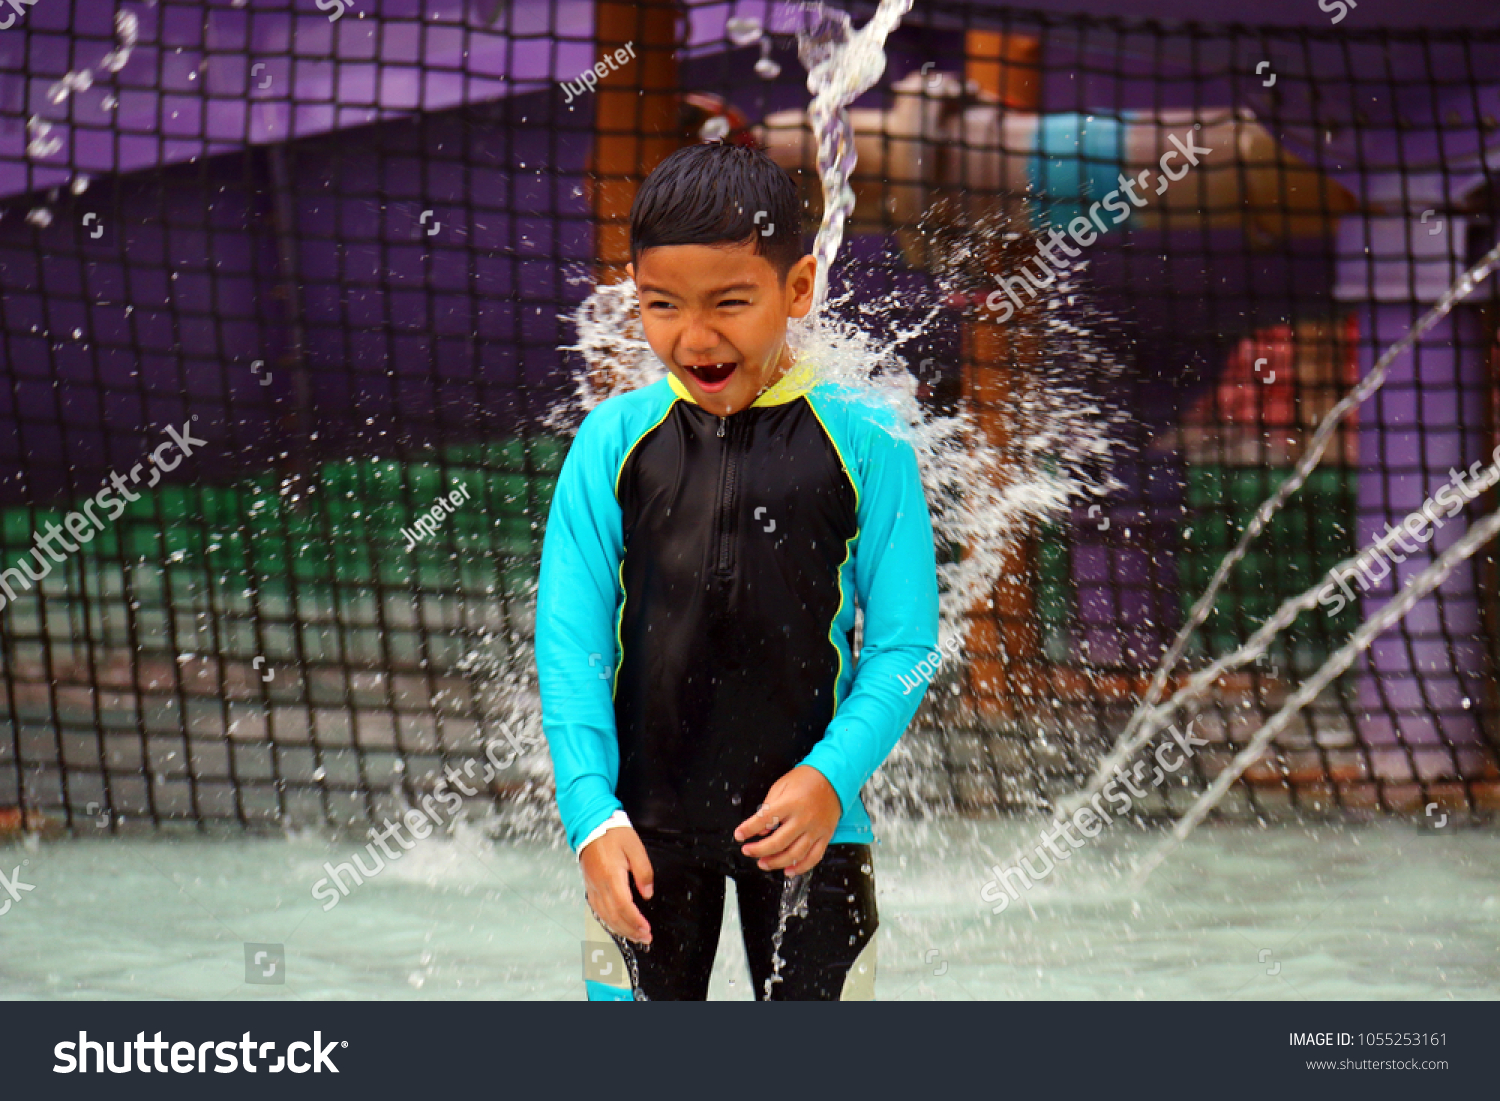 9d457bf18b A boy wearing a swimsuit standing and have water   falling into a water  splash